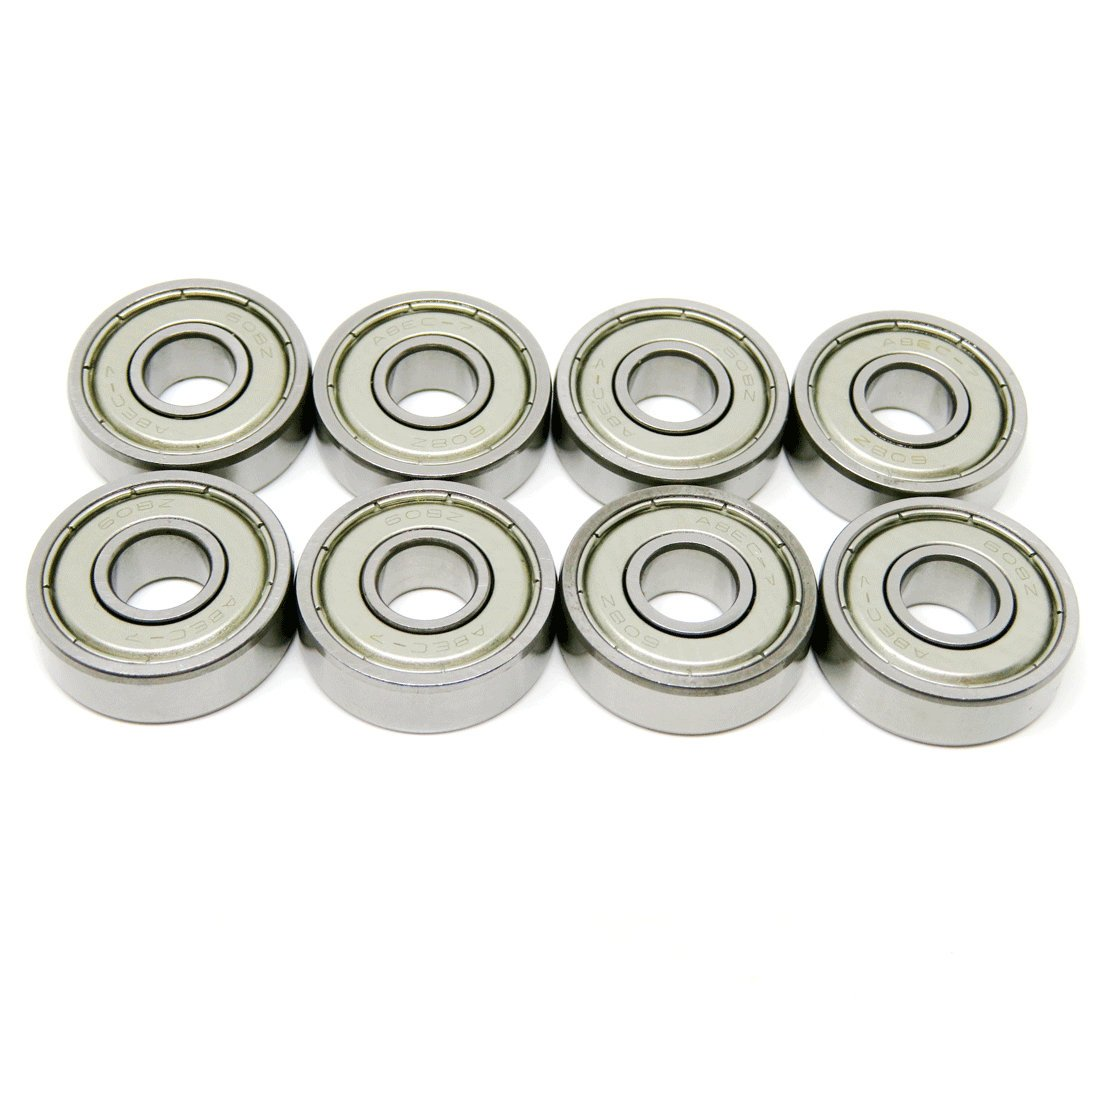 Zoty 608ZZ Inline Skate Bearing Skateboard Replacement Bearings ABEC-7 Grade Bearings for Scooter Pack of 8 pcs 608ZZ ABEC-7